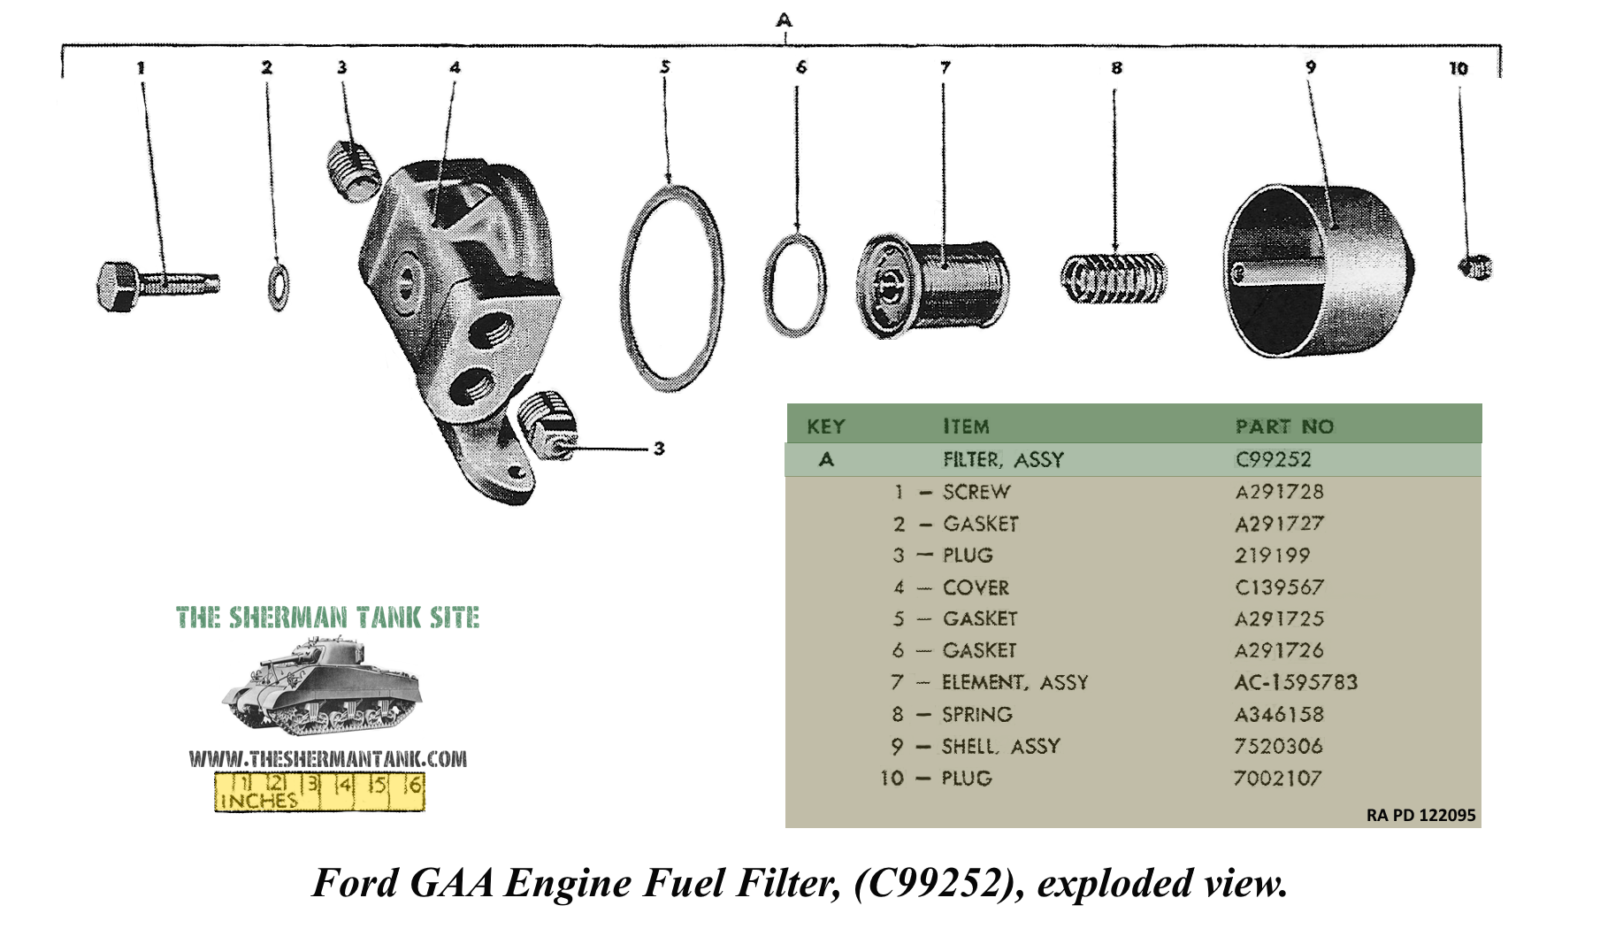 Engine-fuel-filter-c99252-exploded-view-